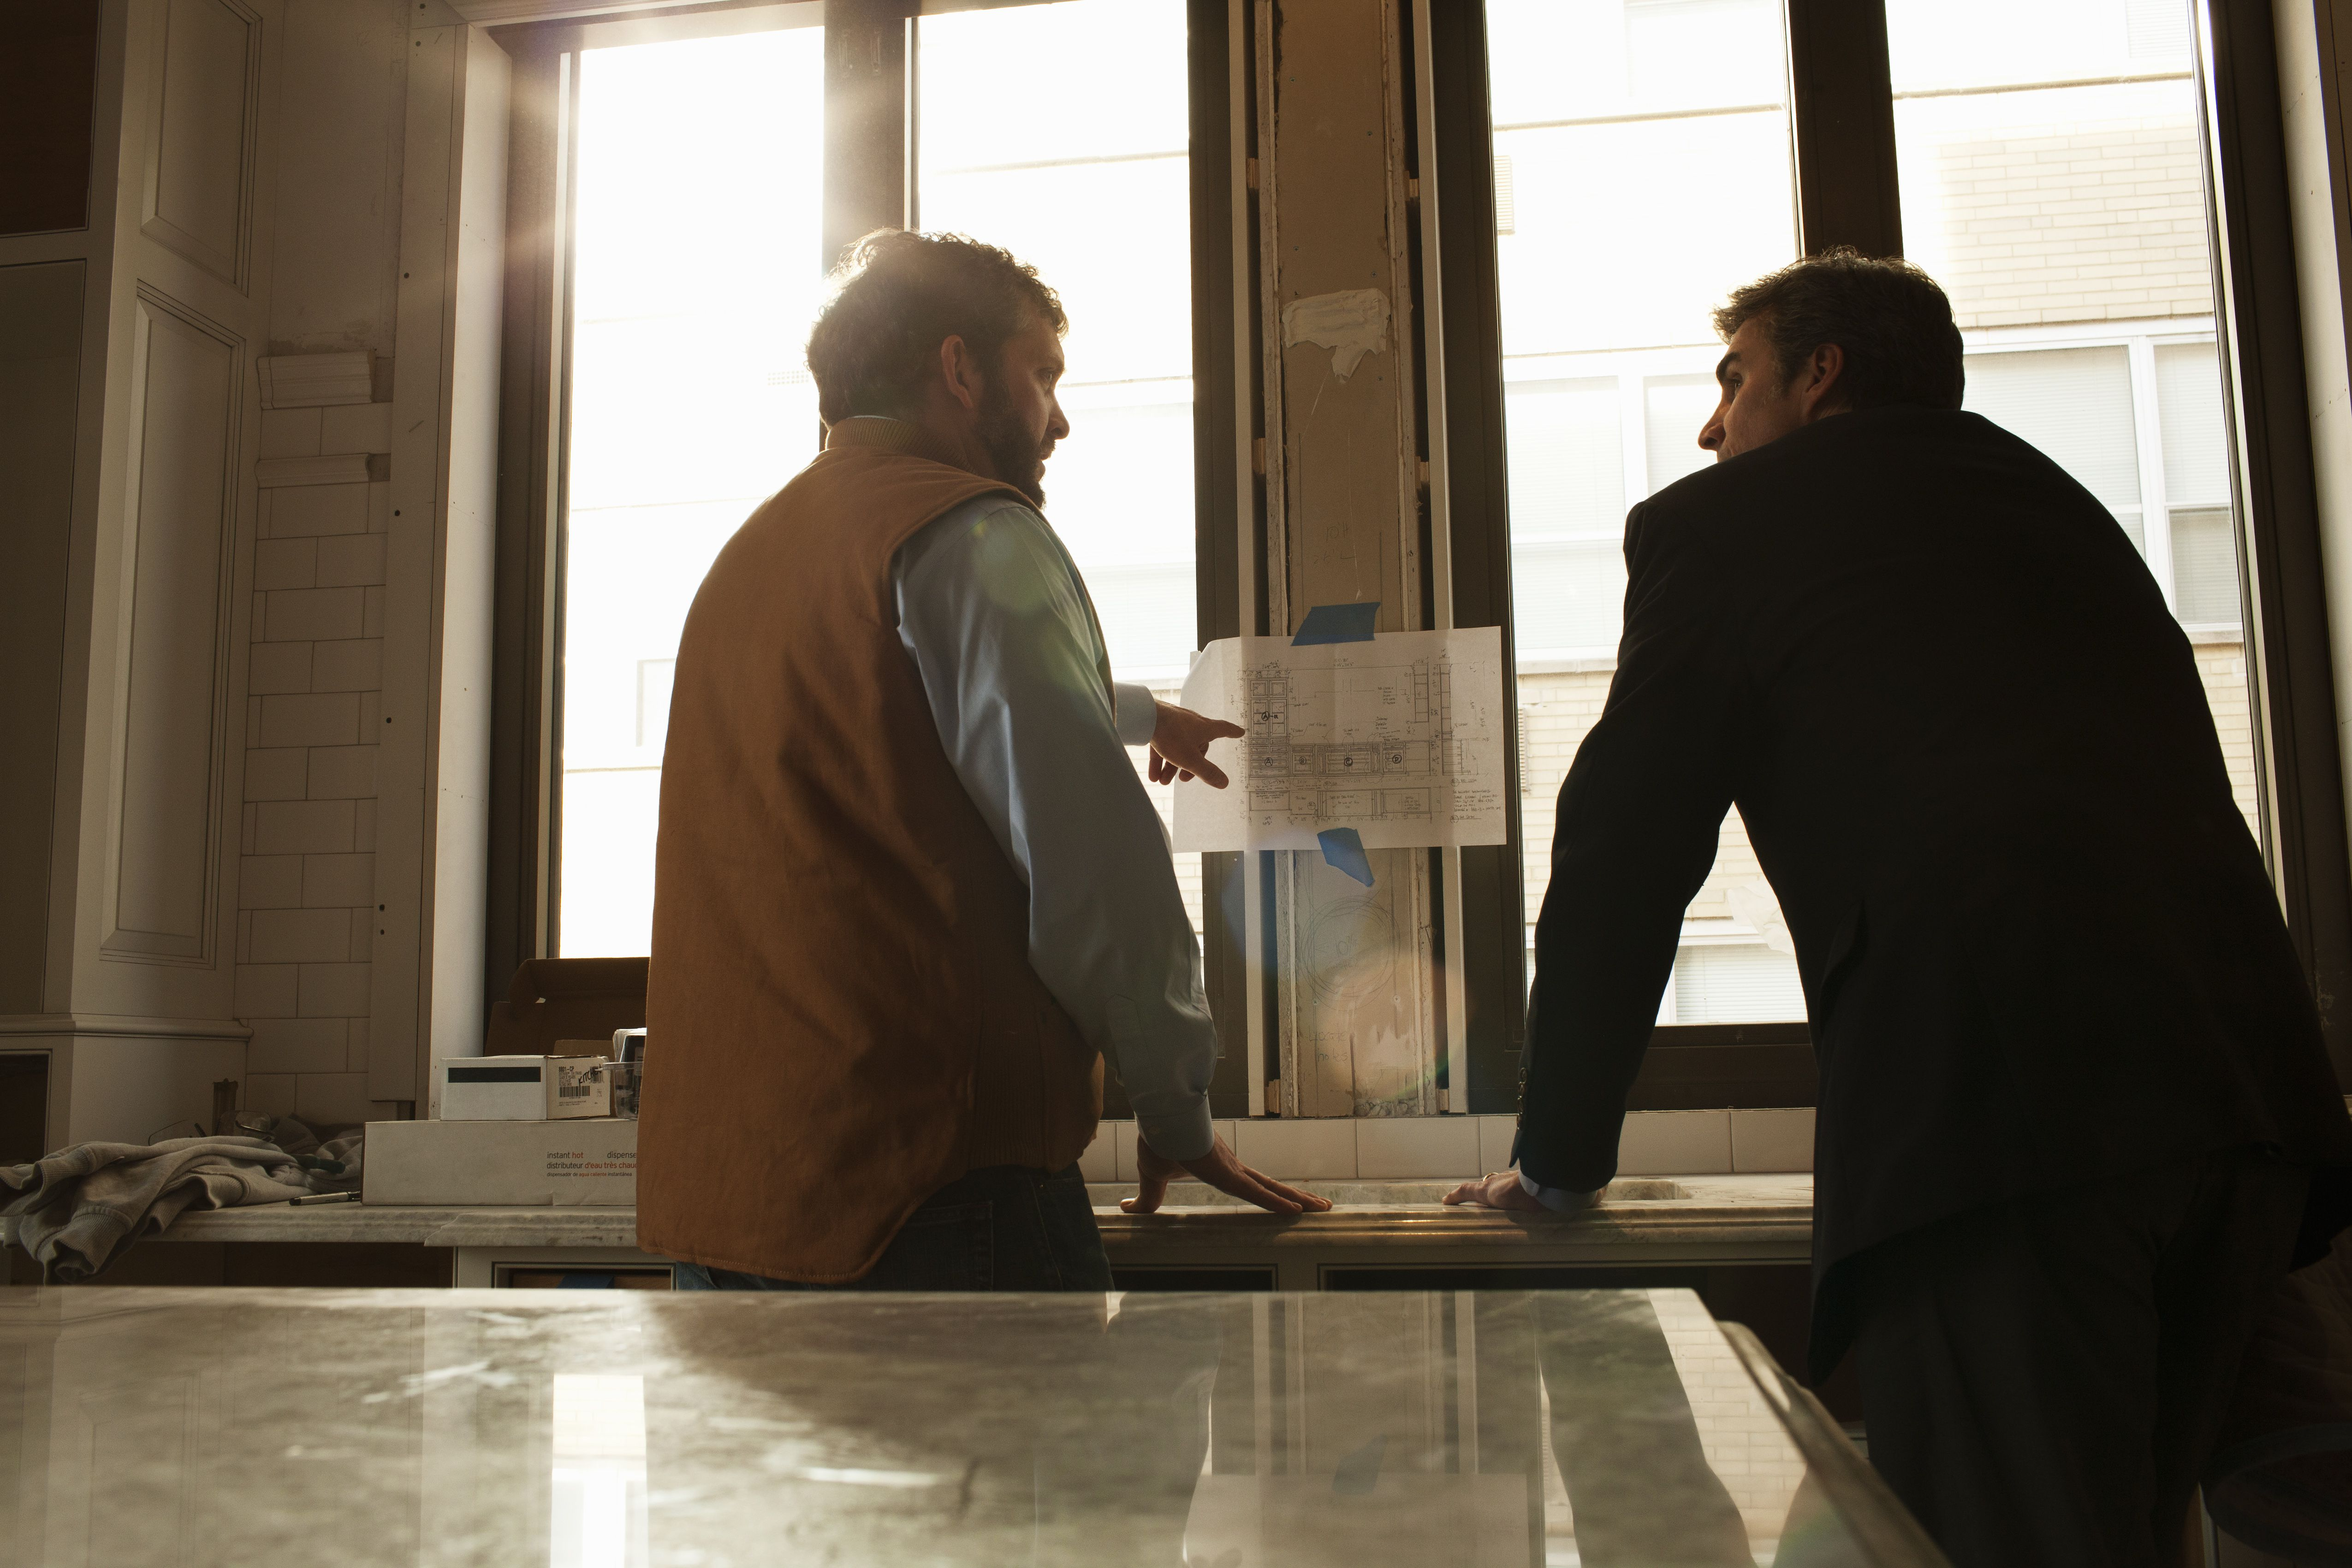 A builder pointing at a diagram and talking to business owner about modification to a rental space.